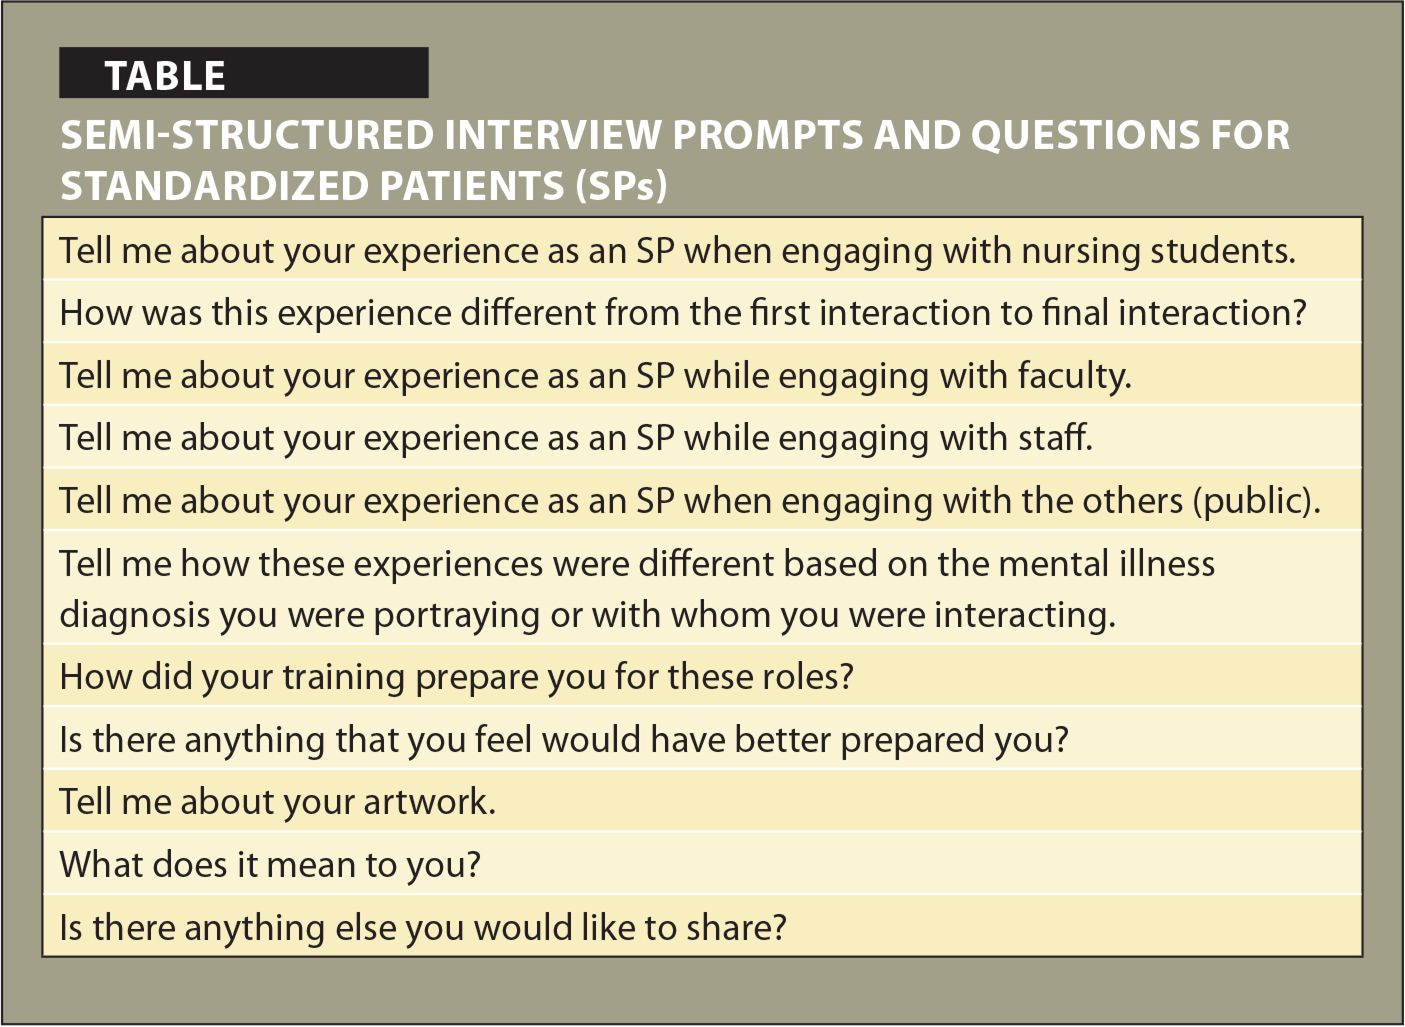 Semi-Structured Interview Prompts and Questions for Standardized Patients (SPs)